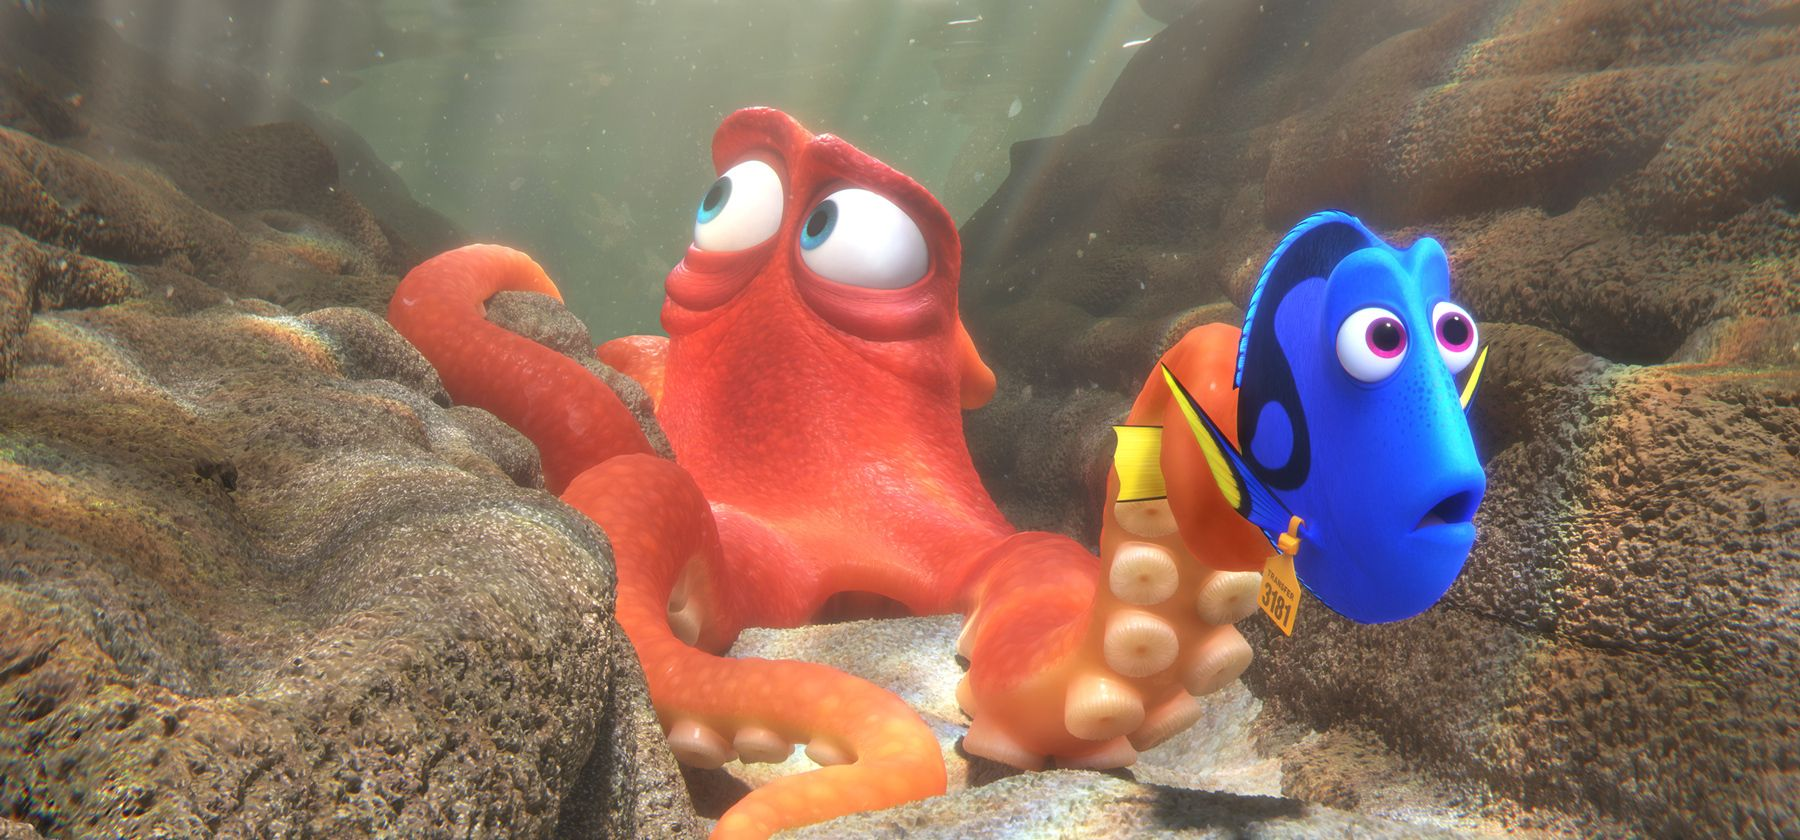 Finding Dory Review (Spoiler Free)